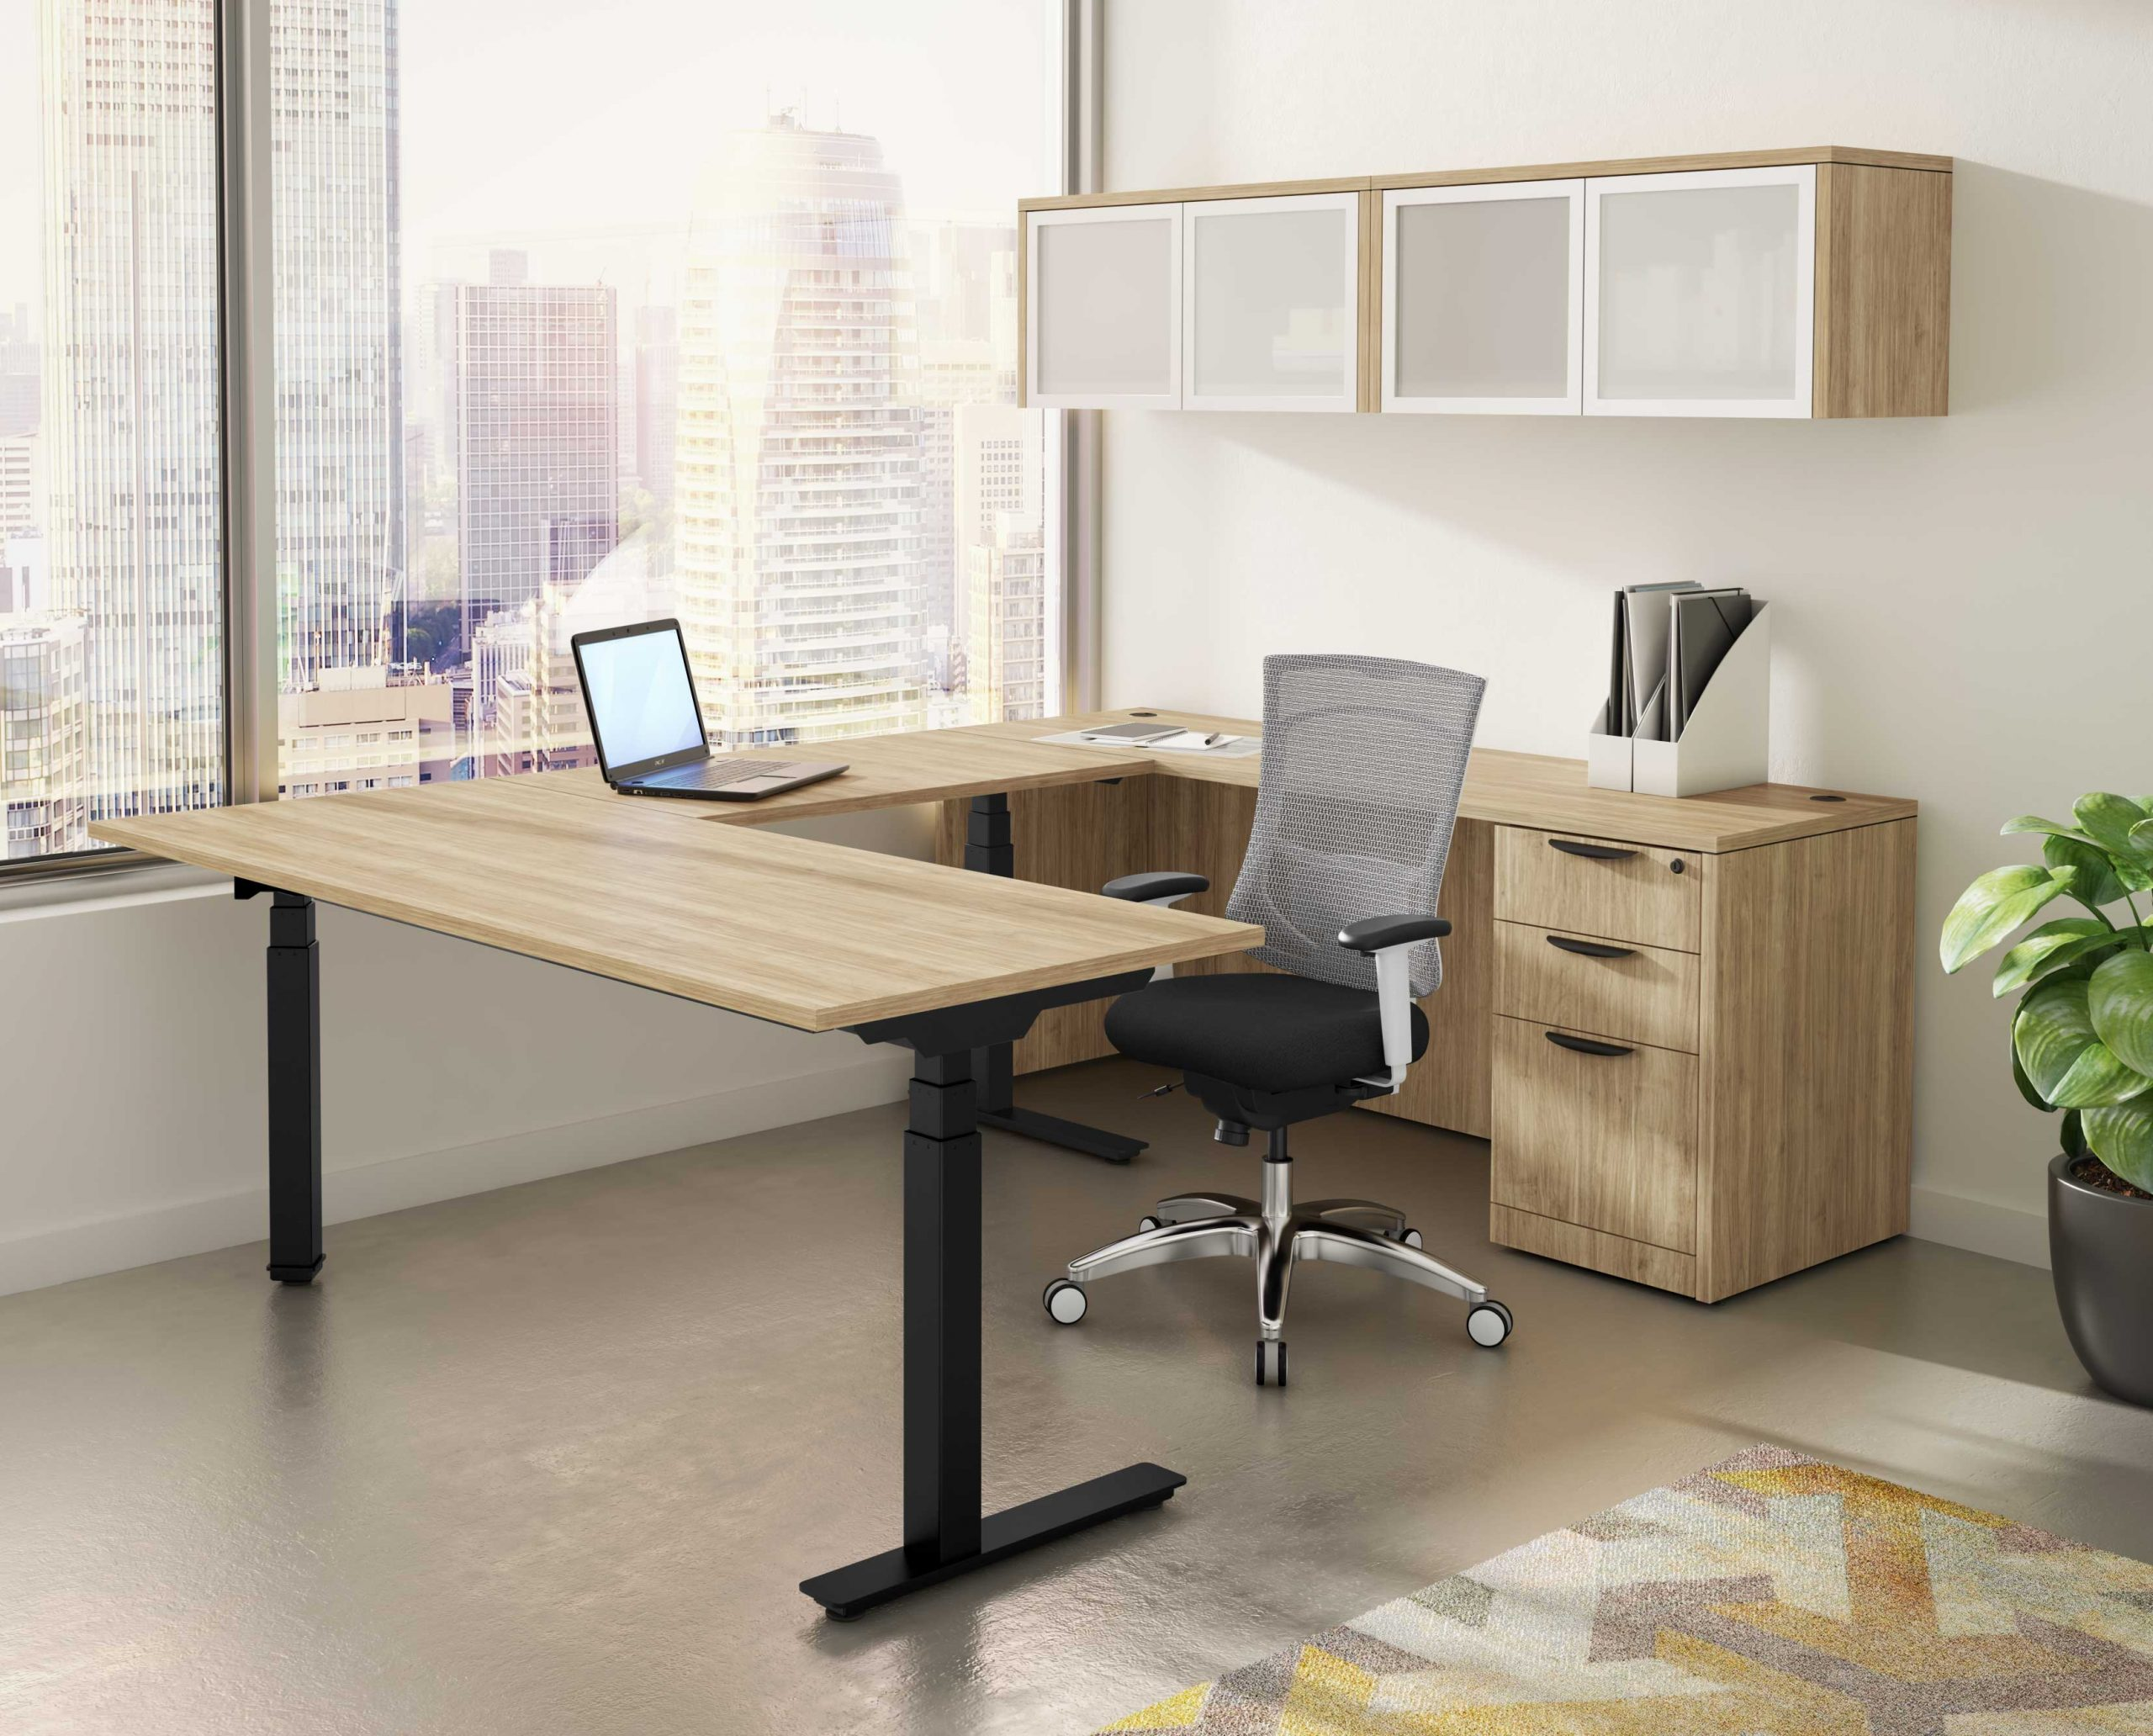 U-Shaped-Standing-Desk-1 Electric Standing Desks: Which Type Is the Right One for Your Home Office?